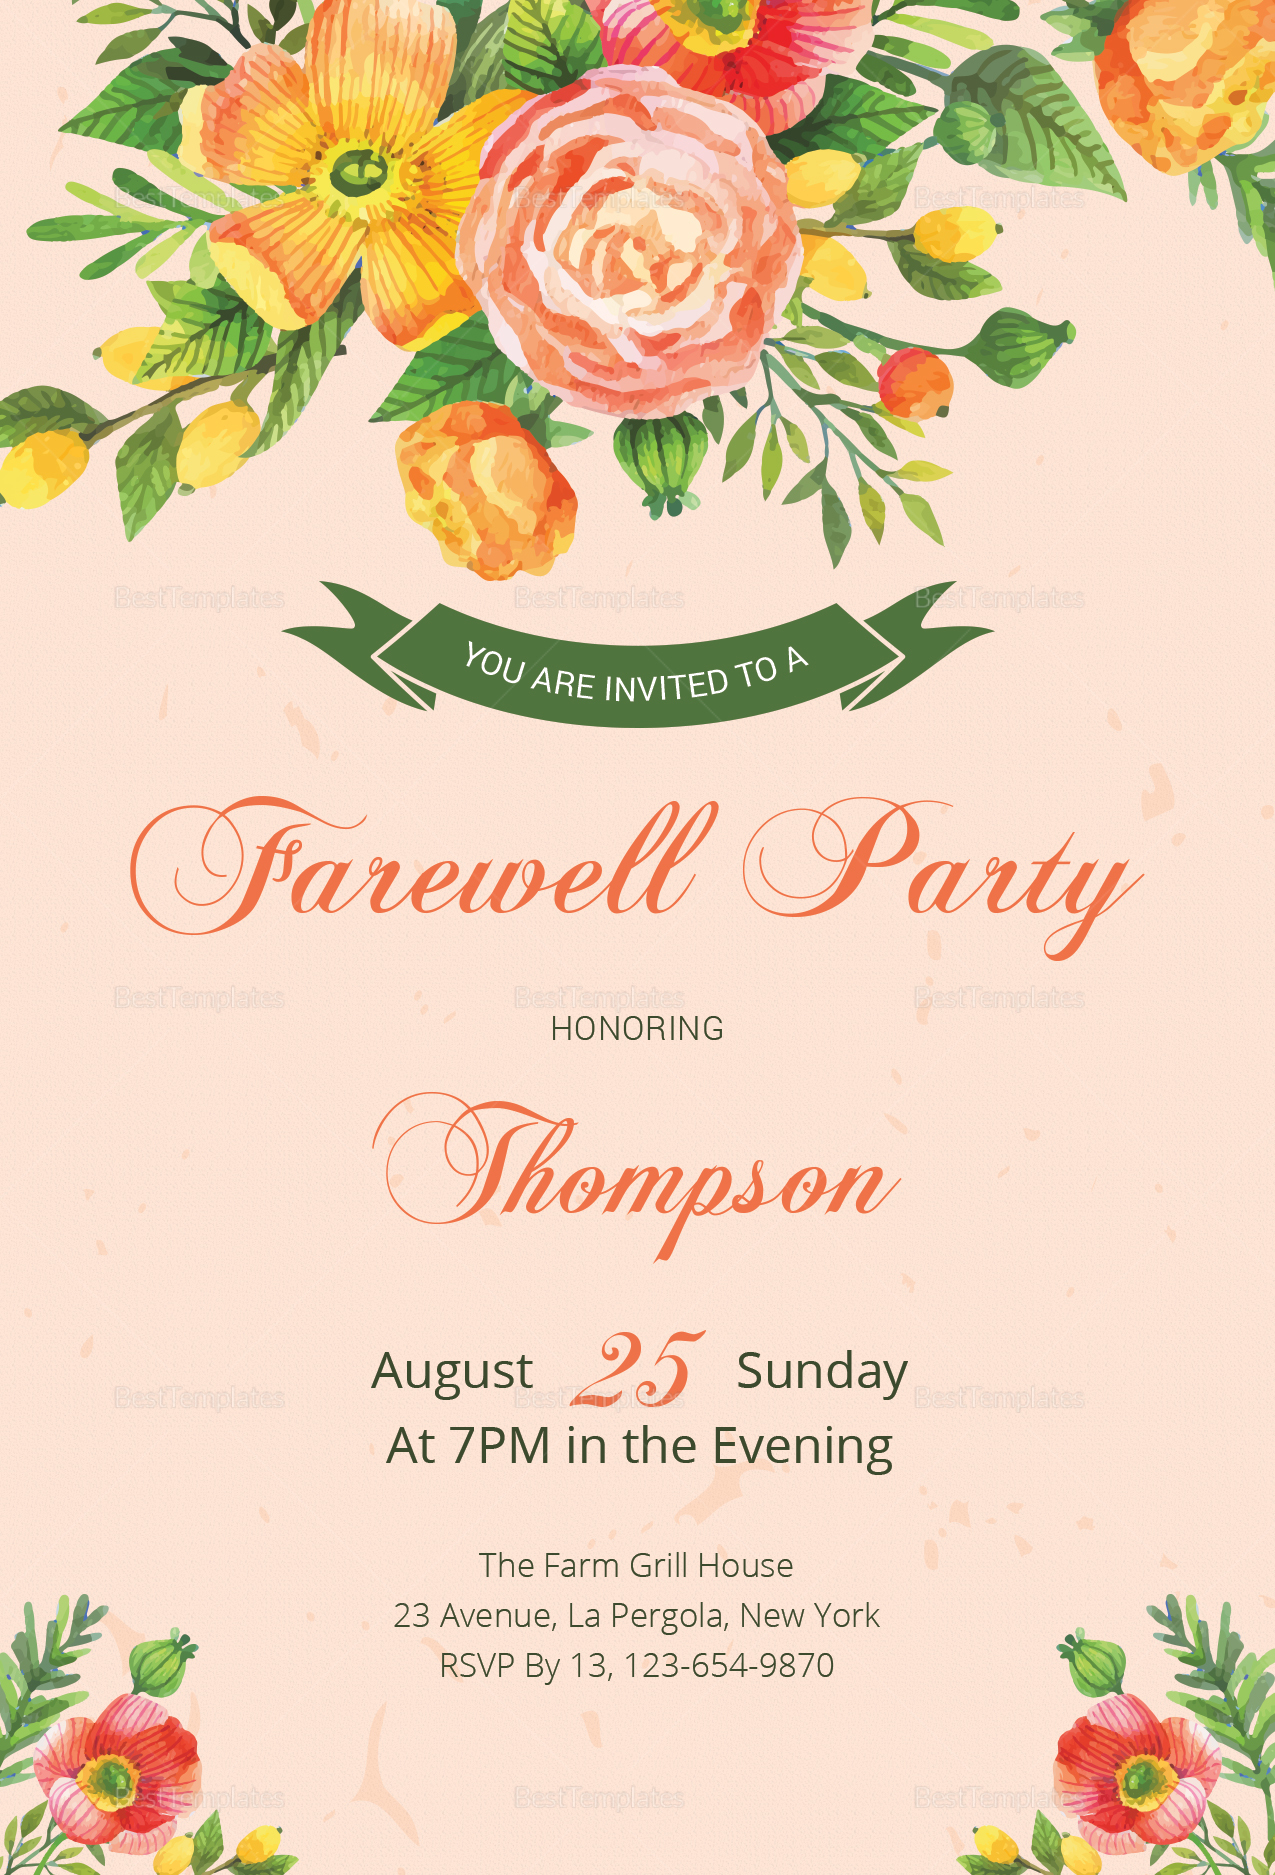 Floral Farewell Party Invitation Design